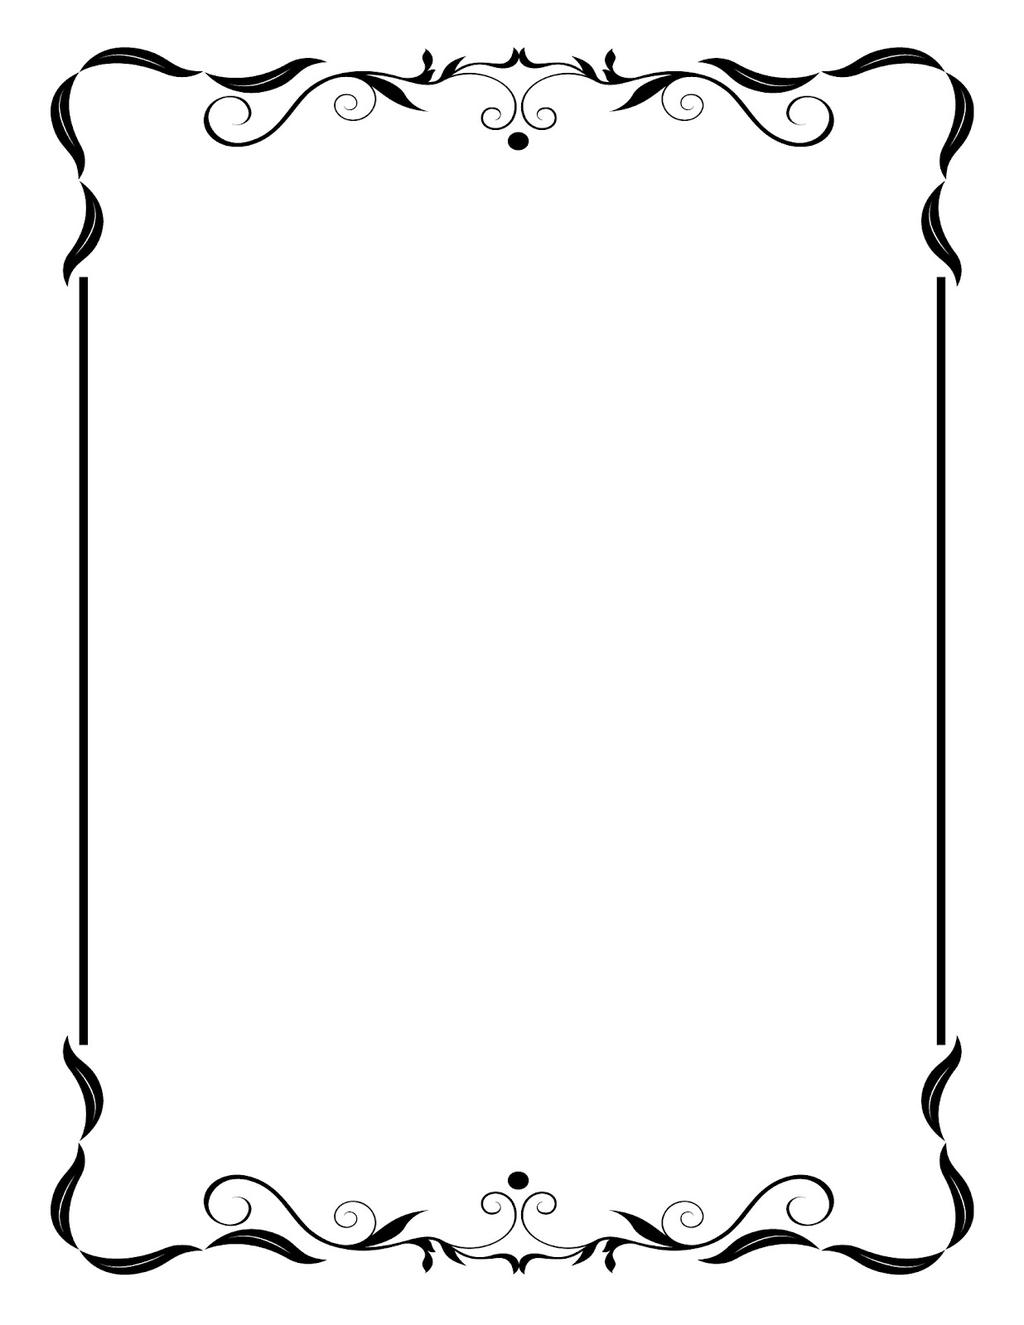 Free Wedding Frame Clipart Download.